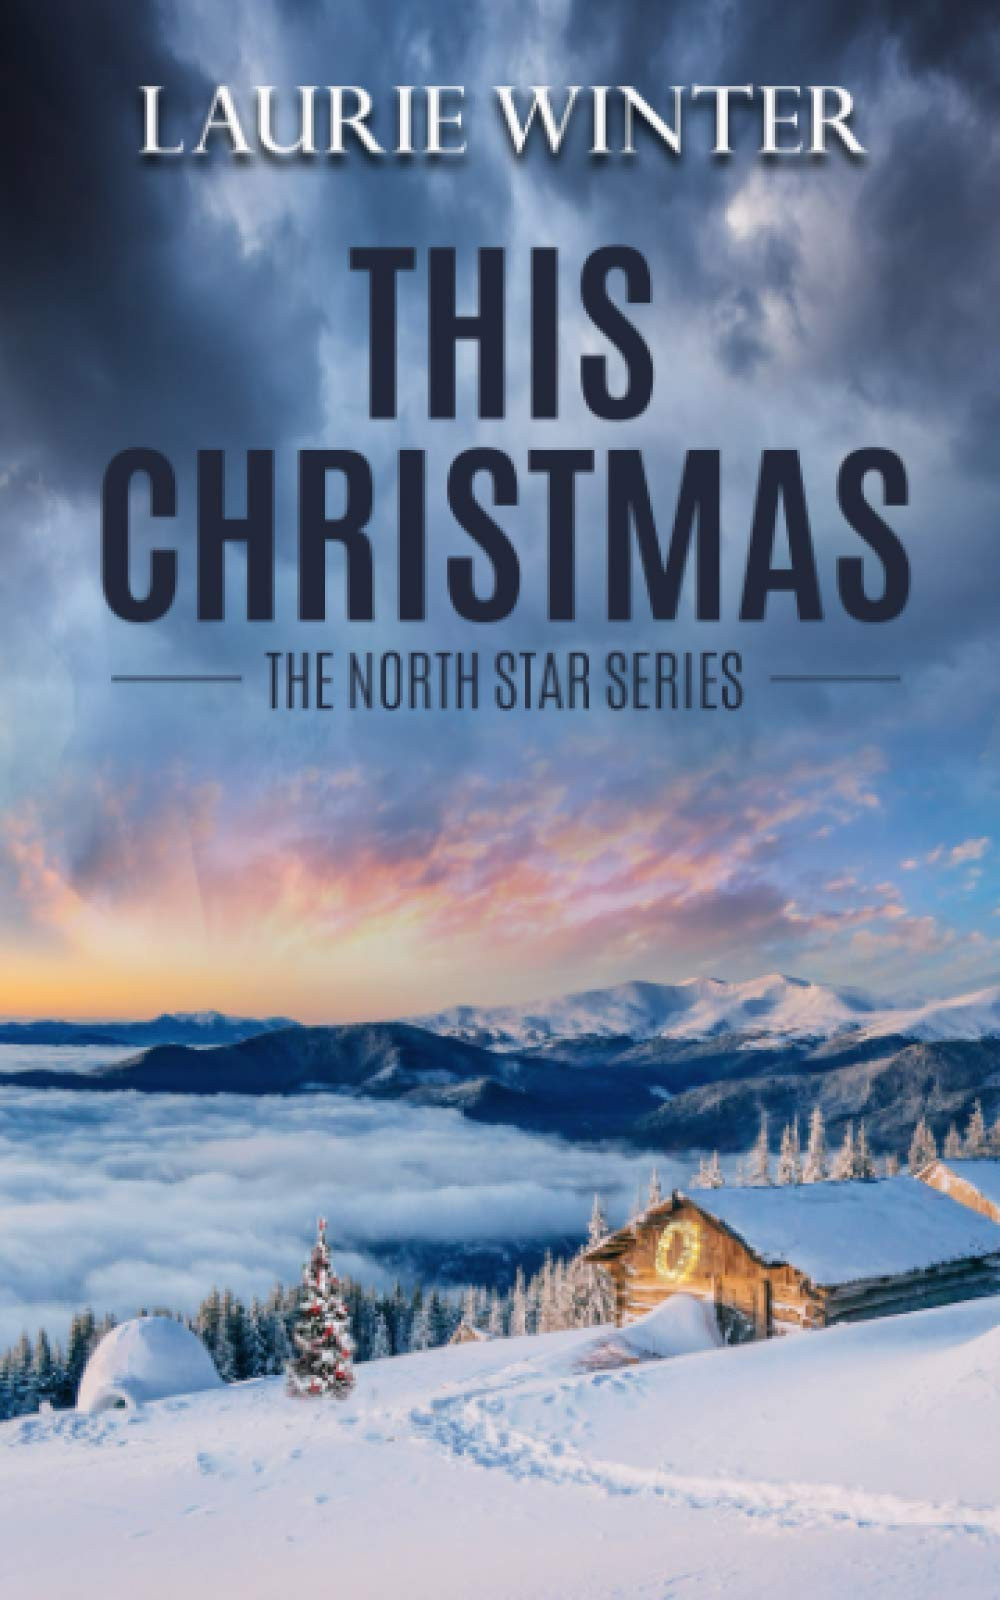 This Christmas by Laurie Winter